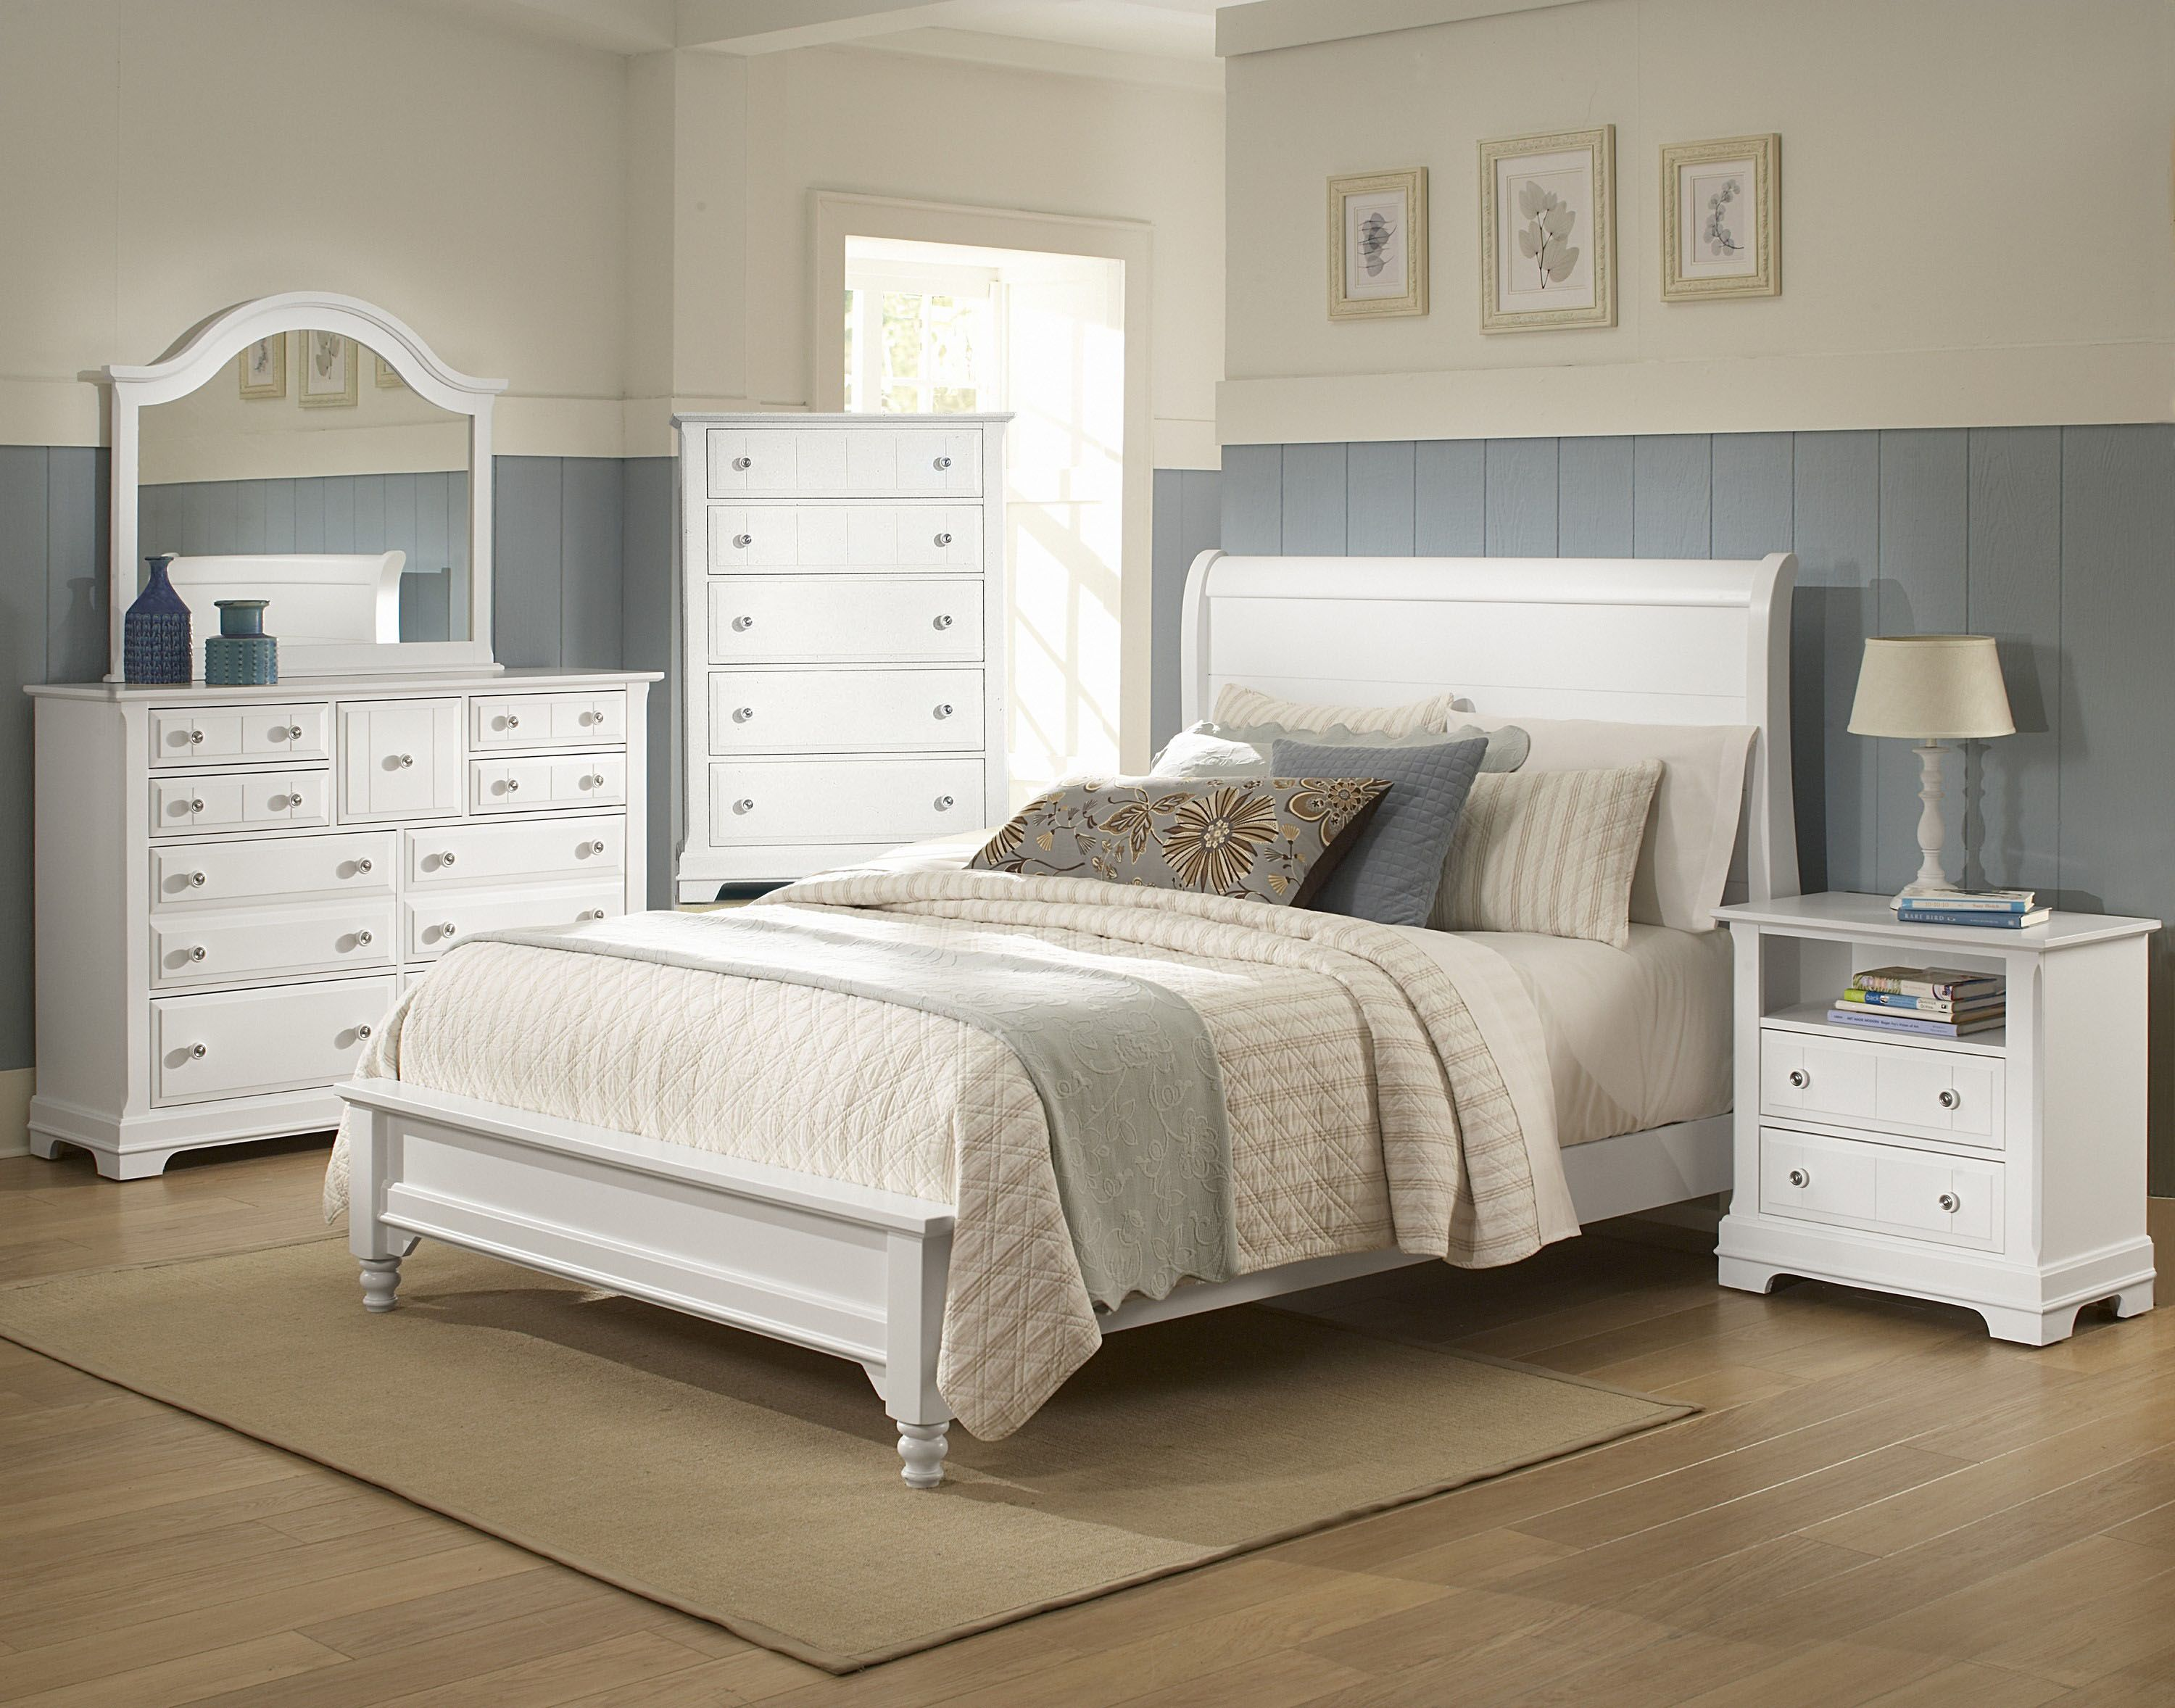 Best The Vaughan Bassett Cottage Collection In Bright White 400 x 300